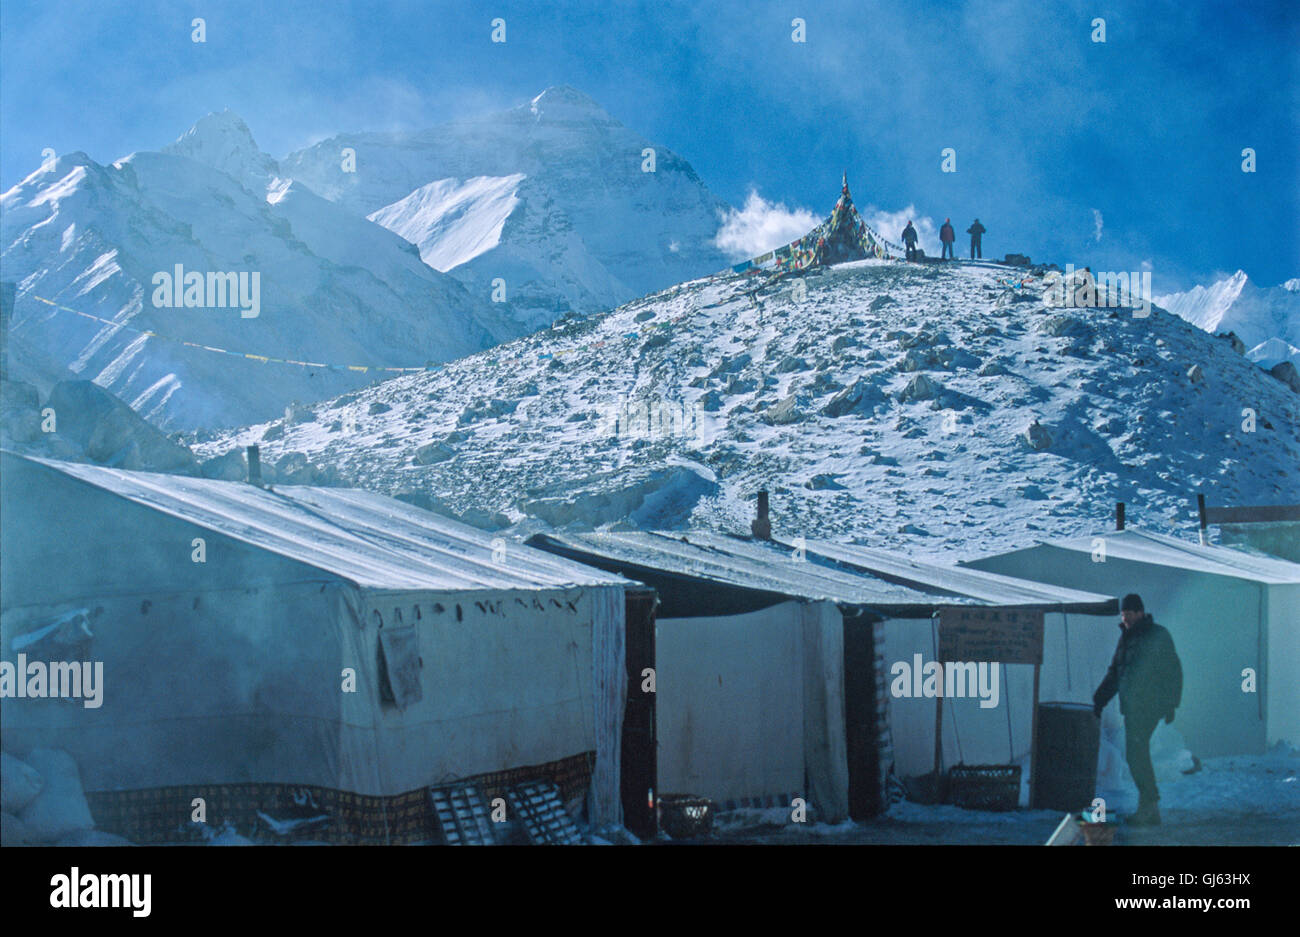 Temporary  makeshift  accommodation / tea-shops, put  up  for  the  trekking/climbing  season,  at  Everest  Base - Stock Image